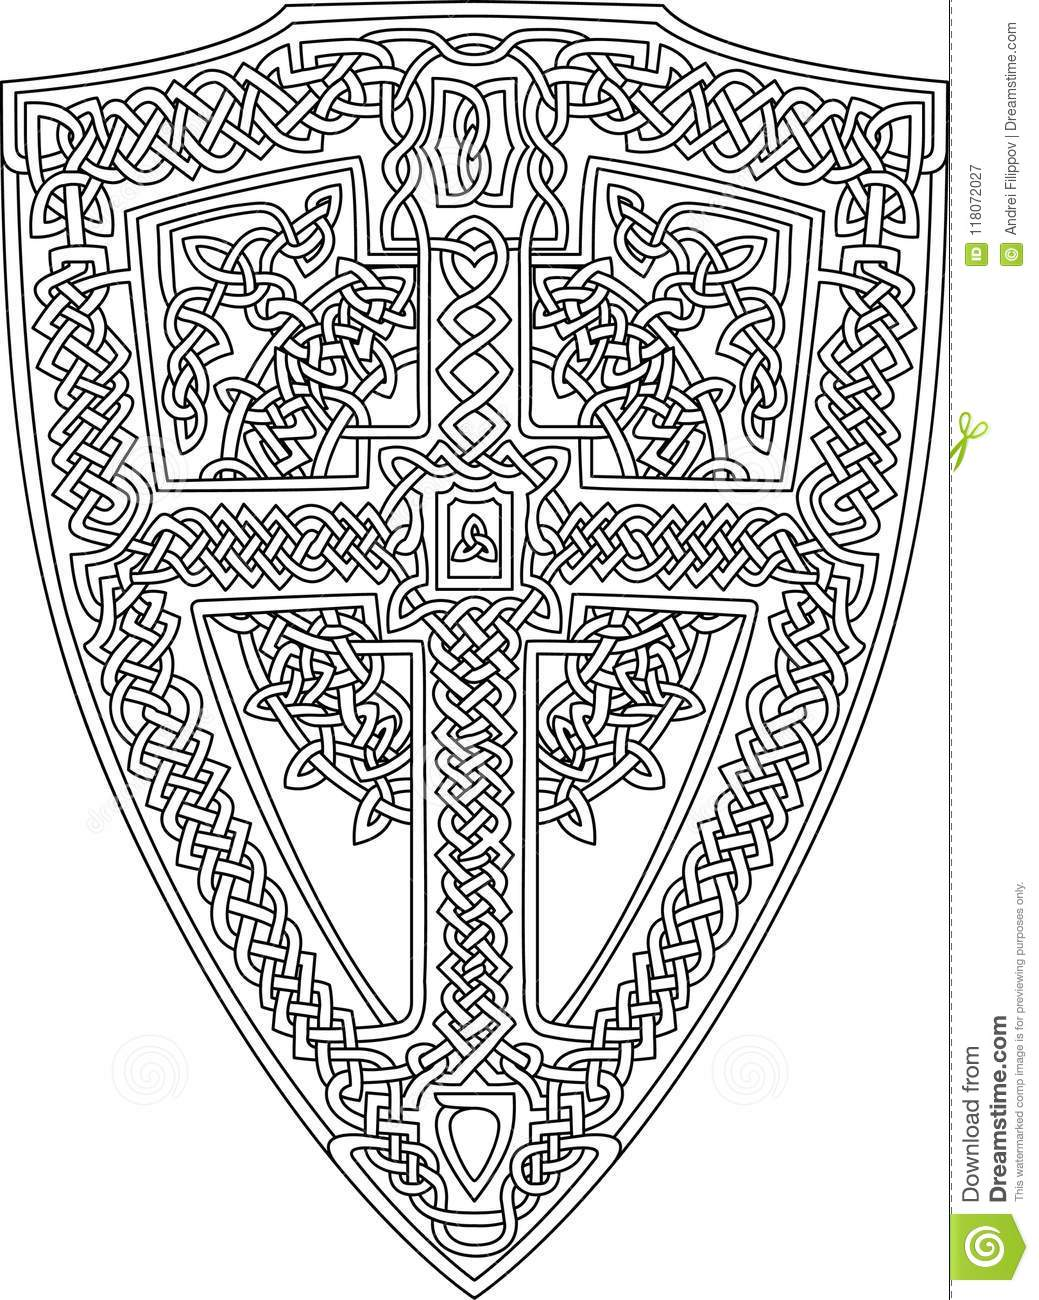 Coloring Book Page With Celtic Shield Stock Vector - Illustration of ...